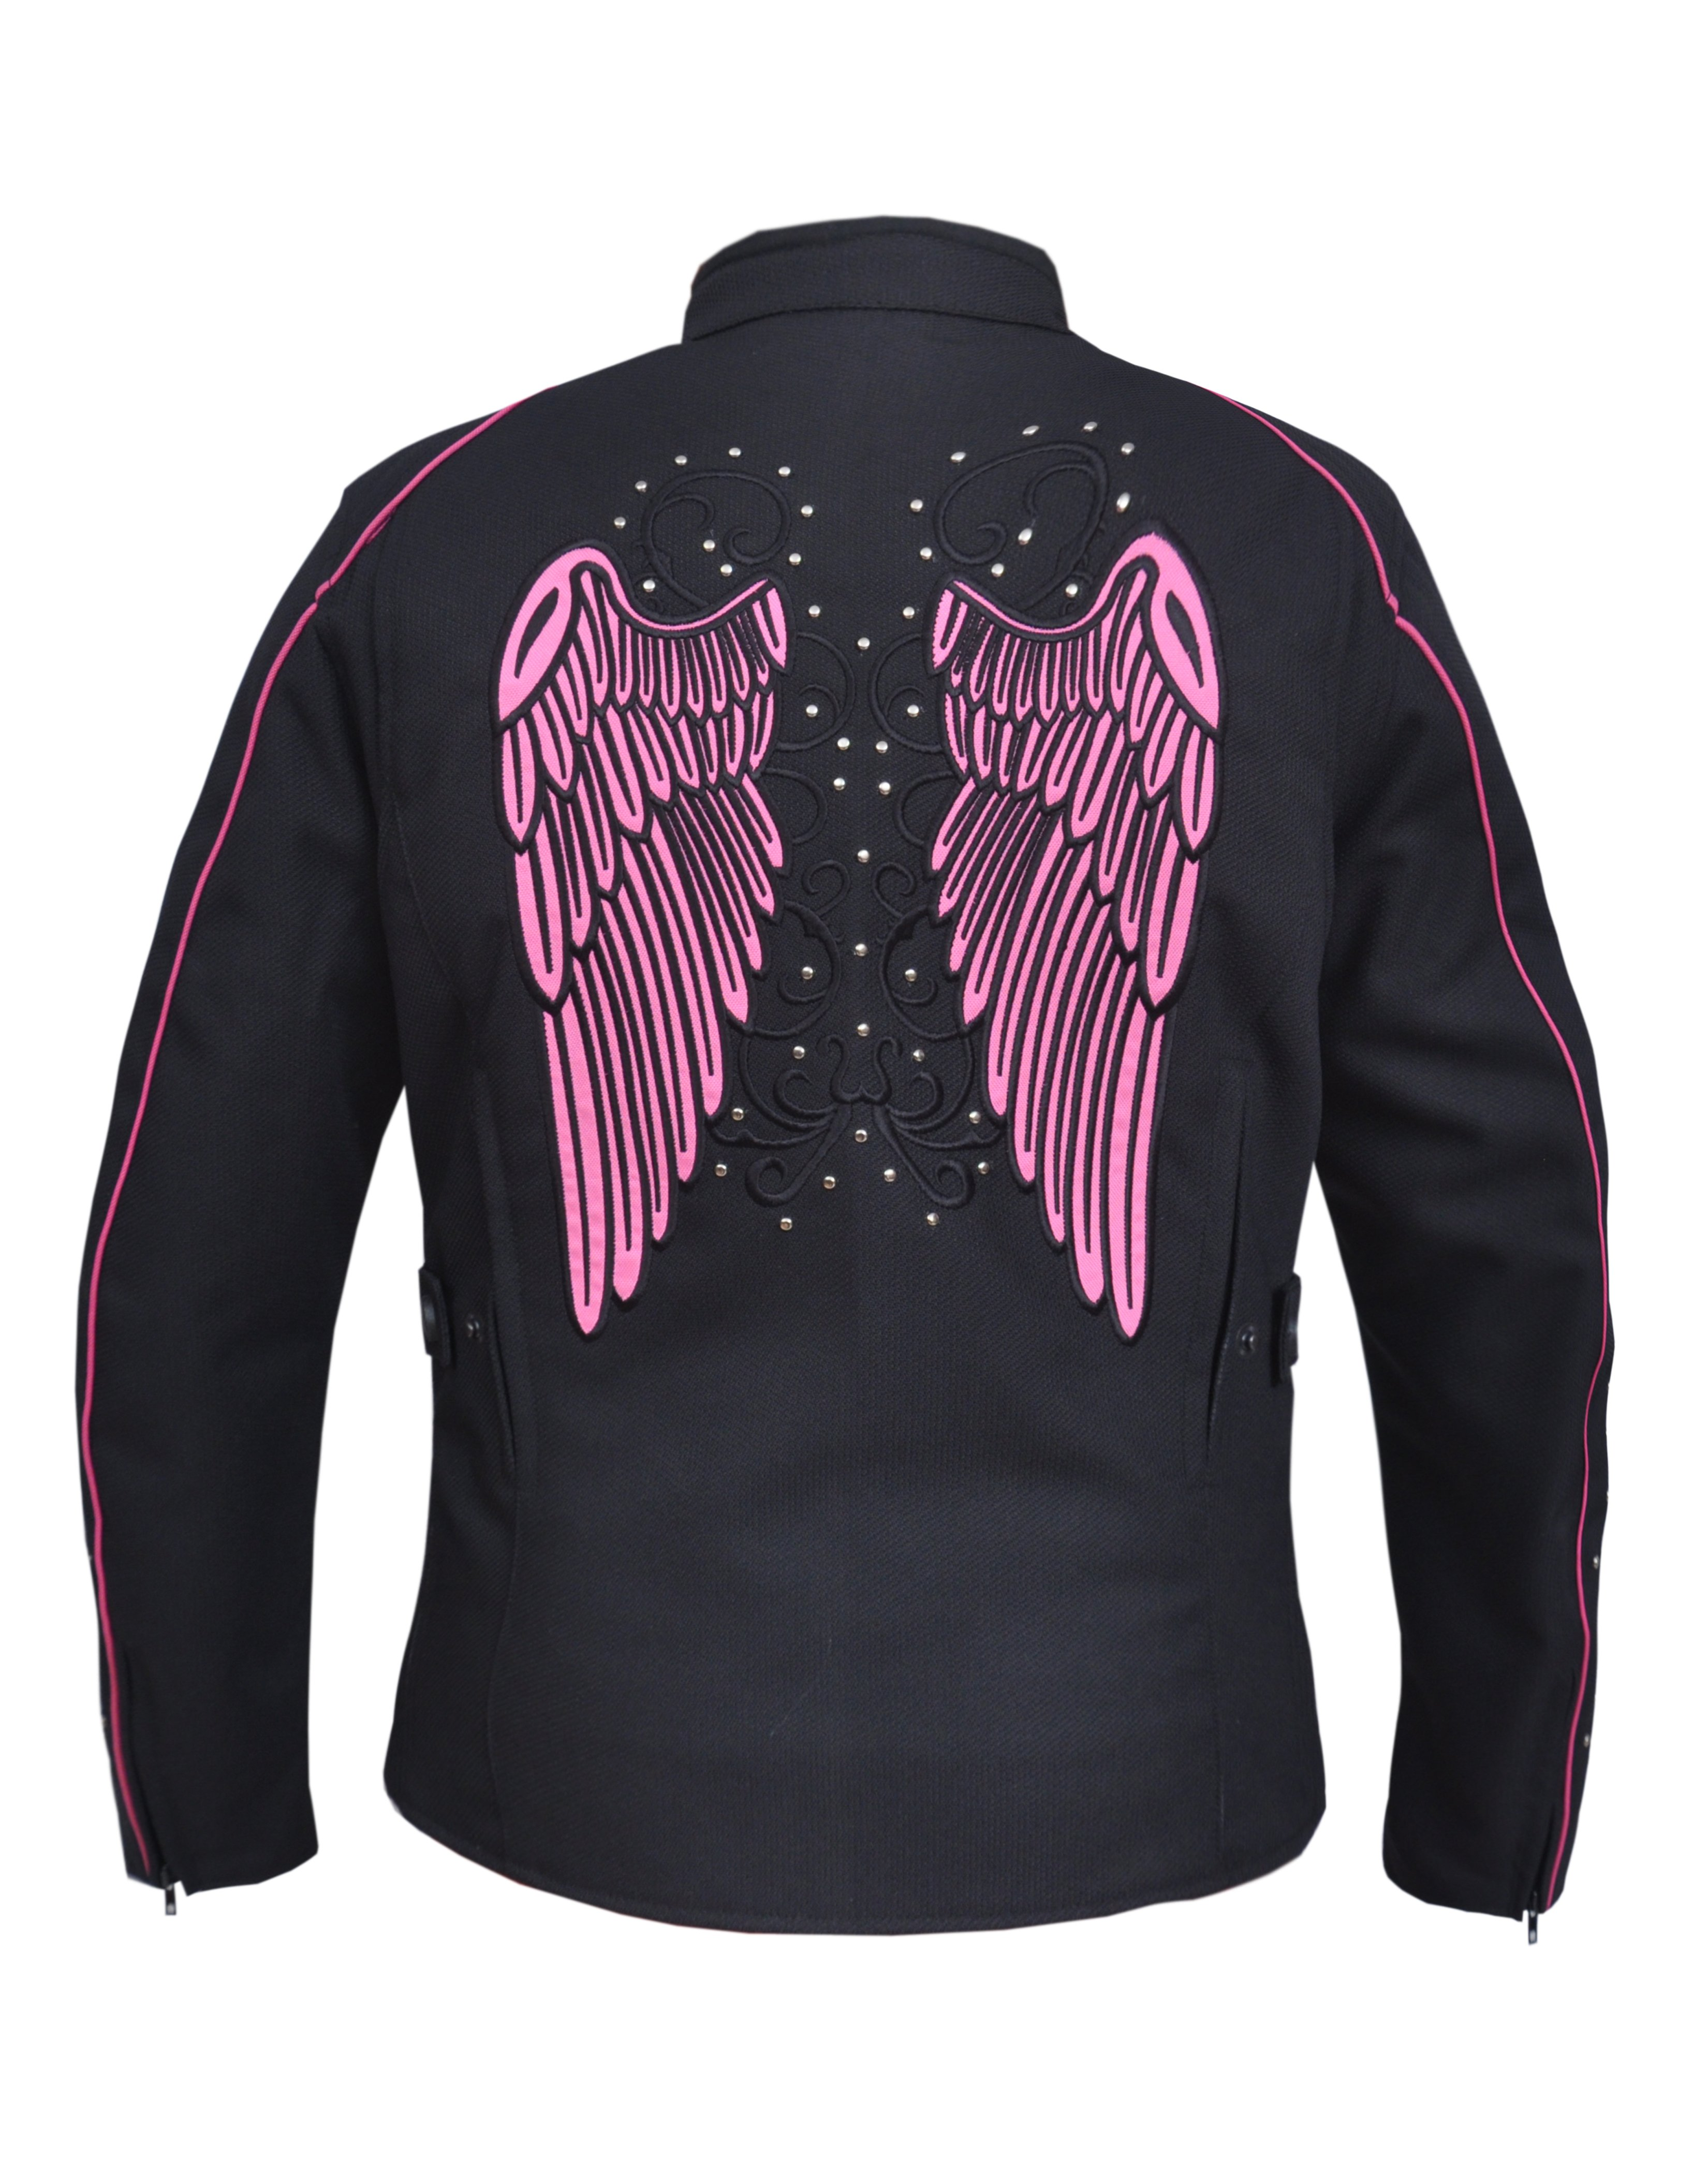 Women's Nylon Textile Jacket With Hot Pink Wings - SKU 3692-24-UN